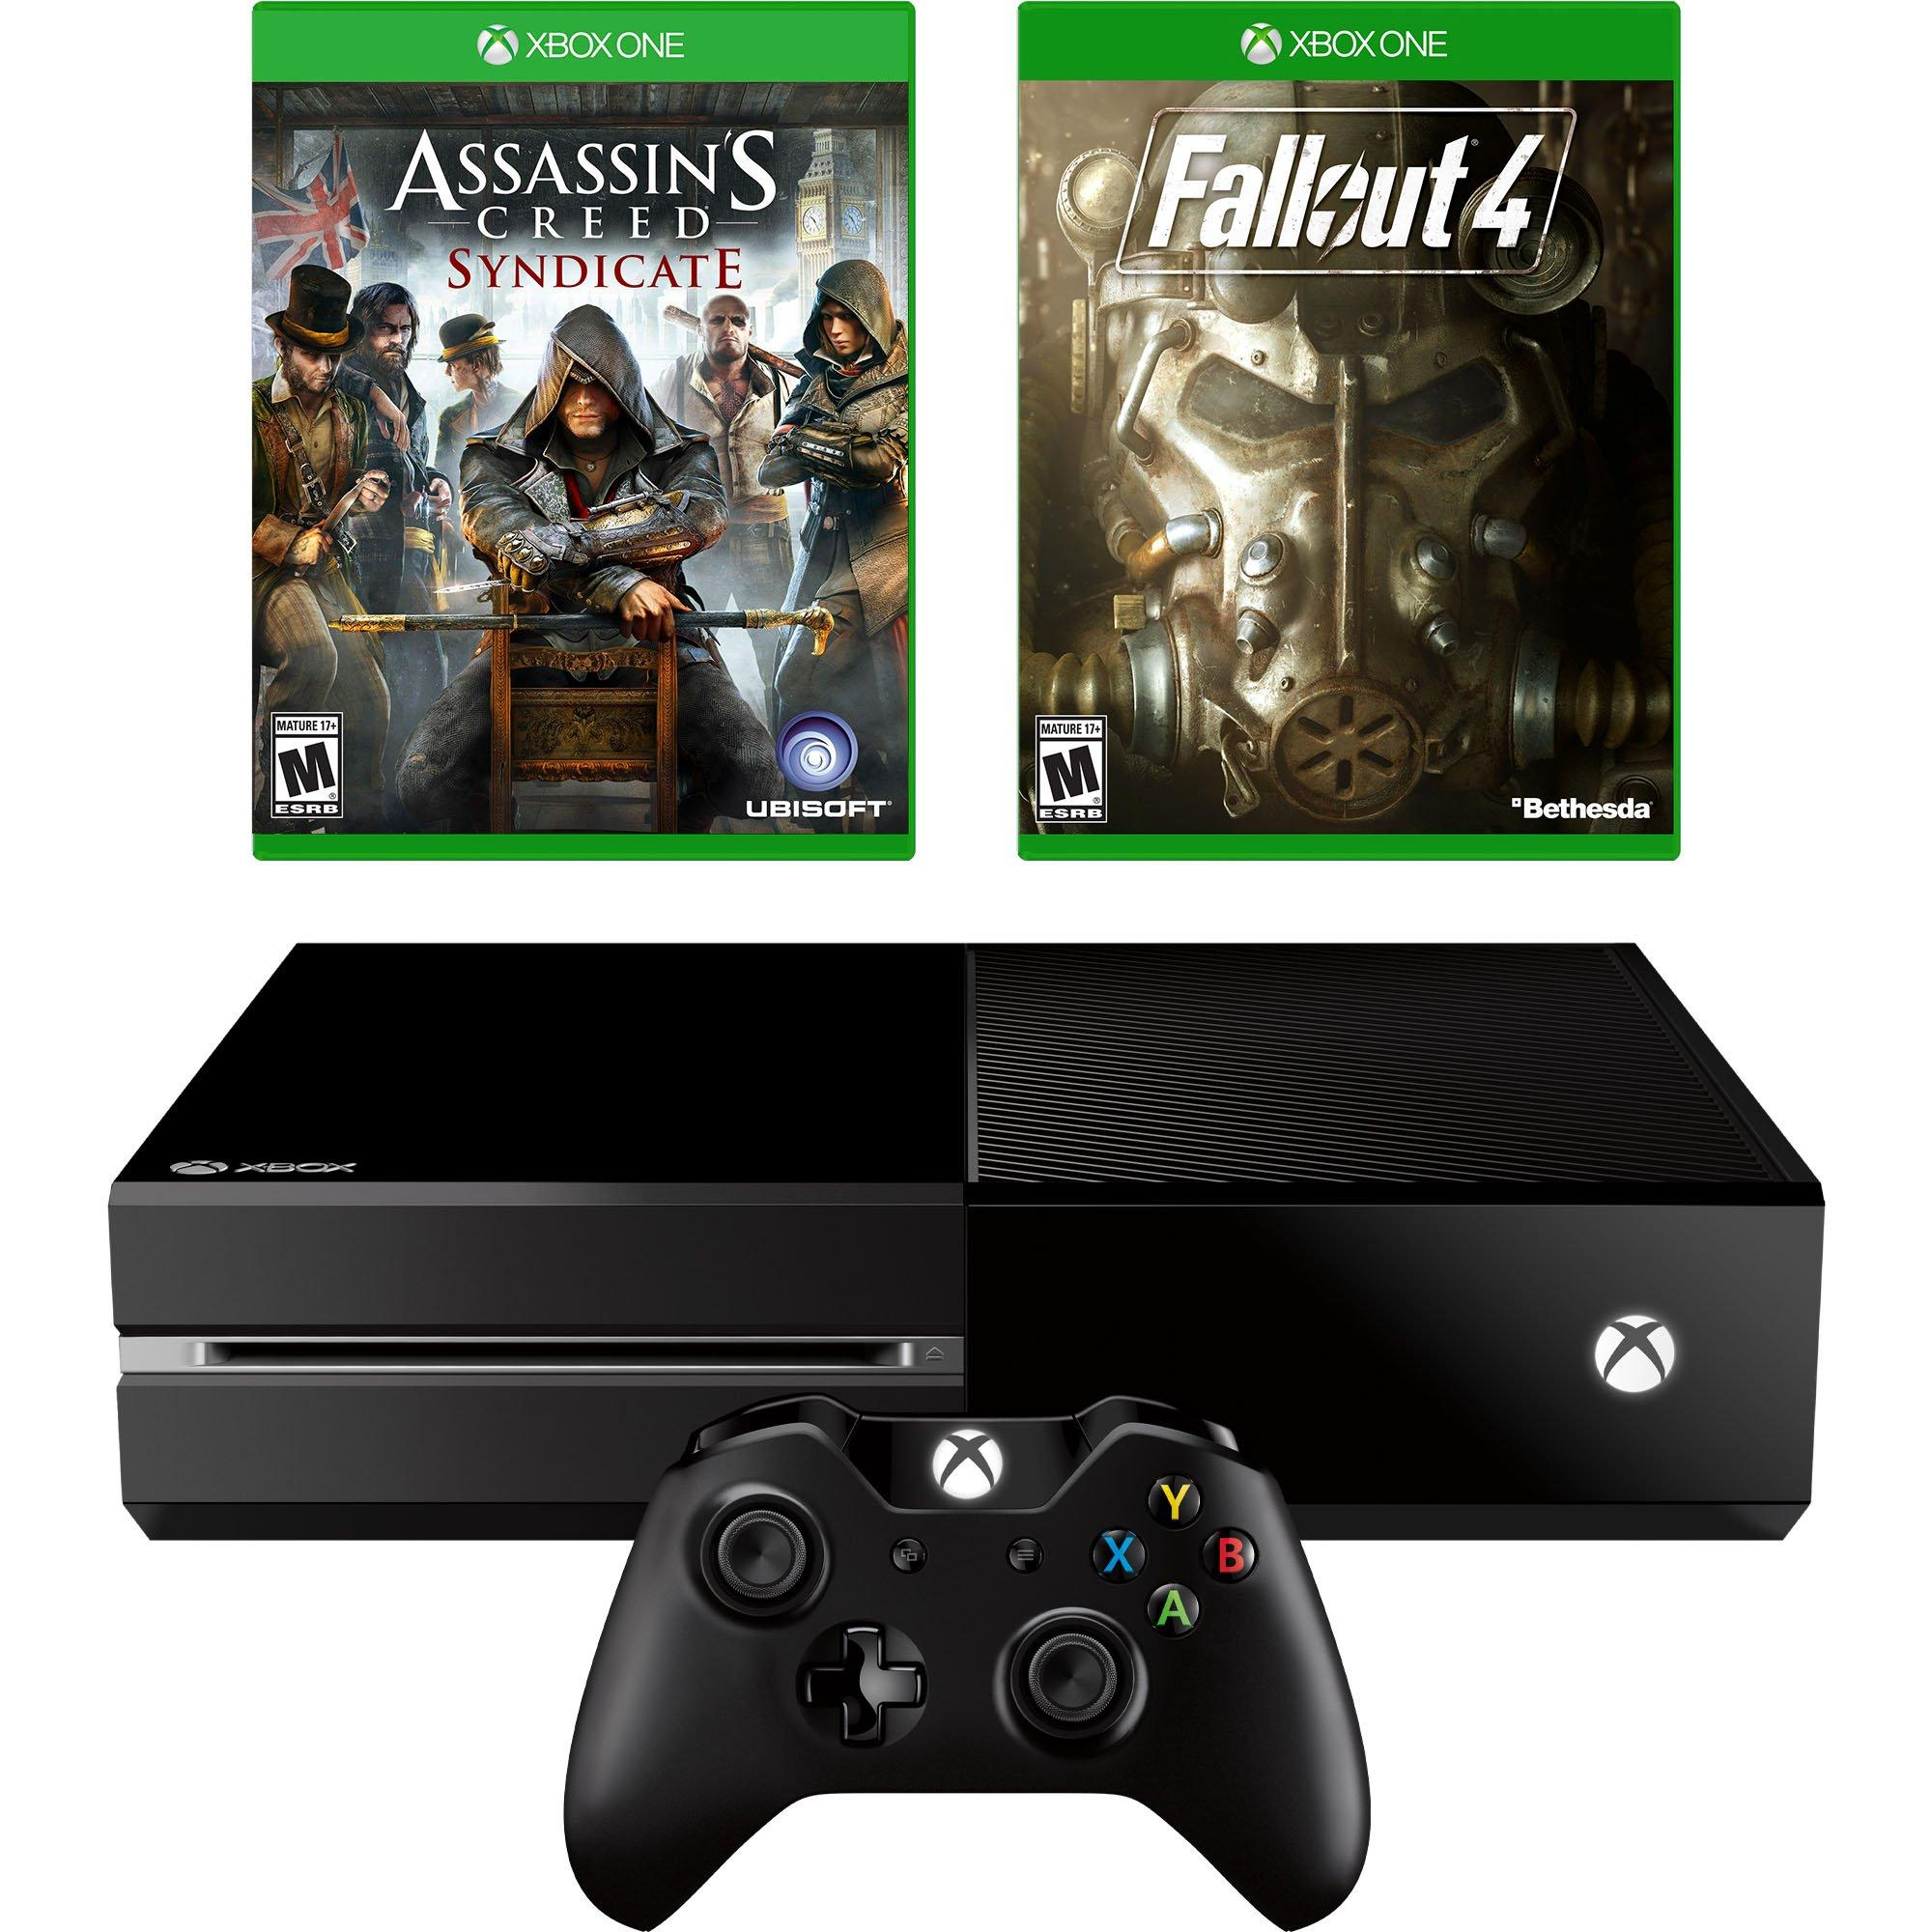 Xbox One Blast from the Past Open World System Bundle